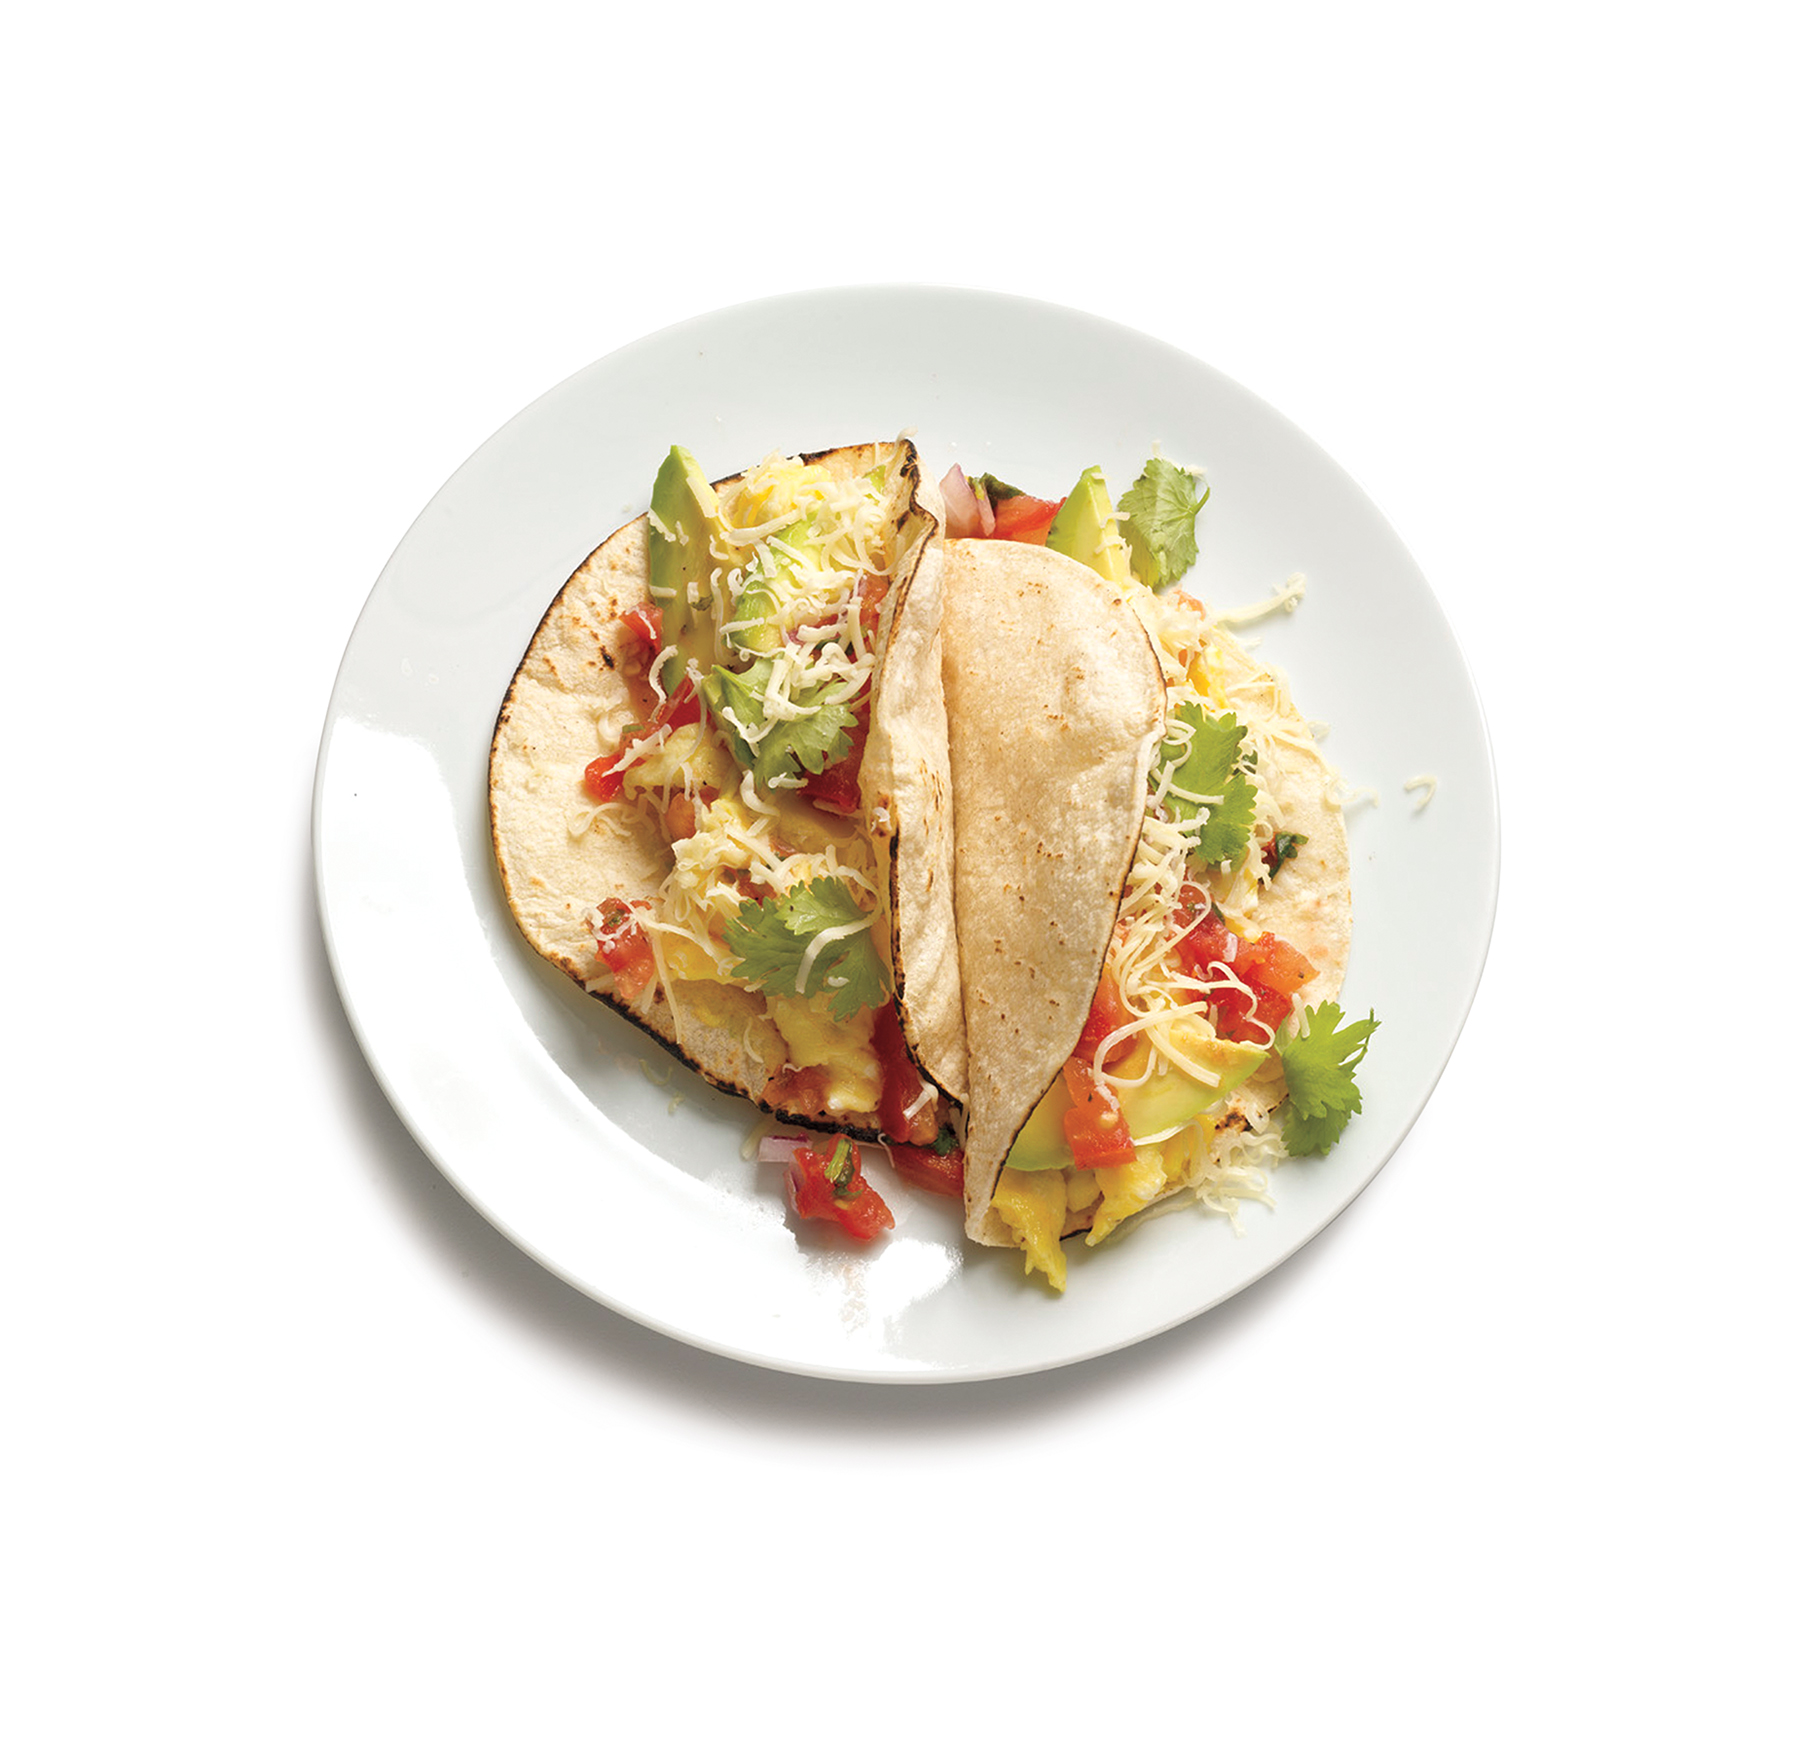 Breakfast ideas with eggs - Scrambled Egg Tacos